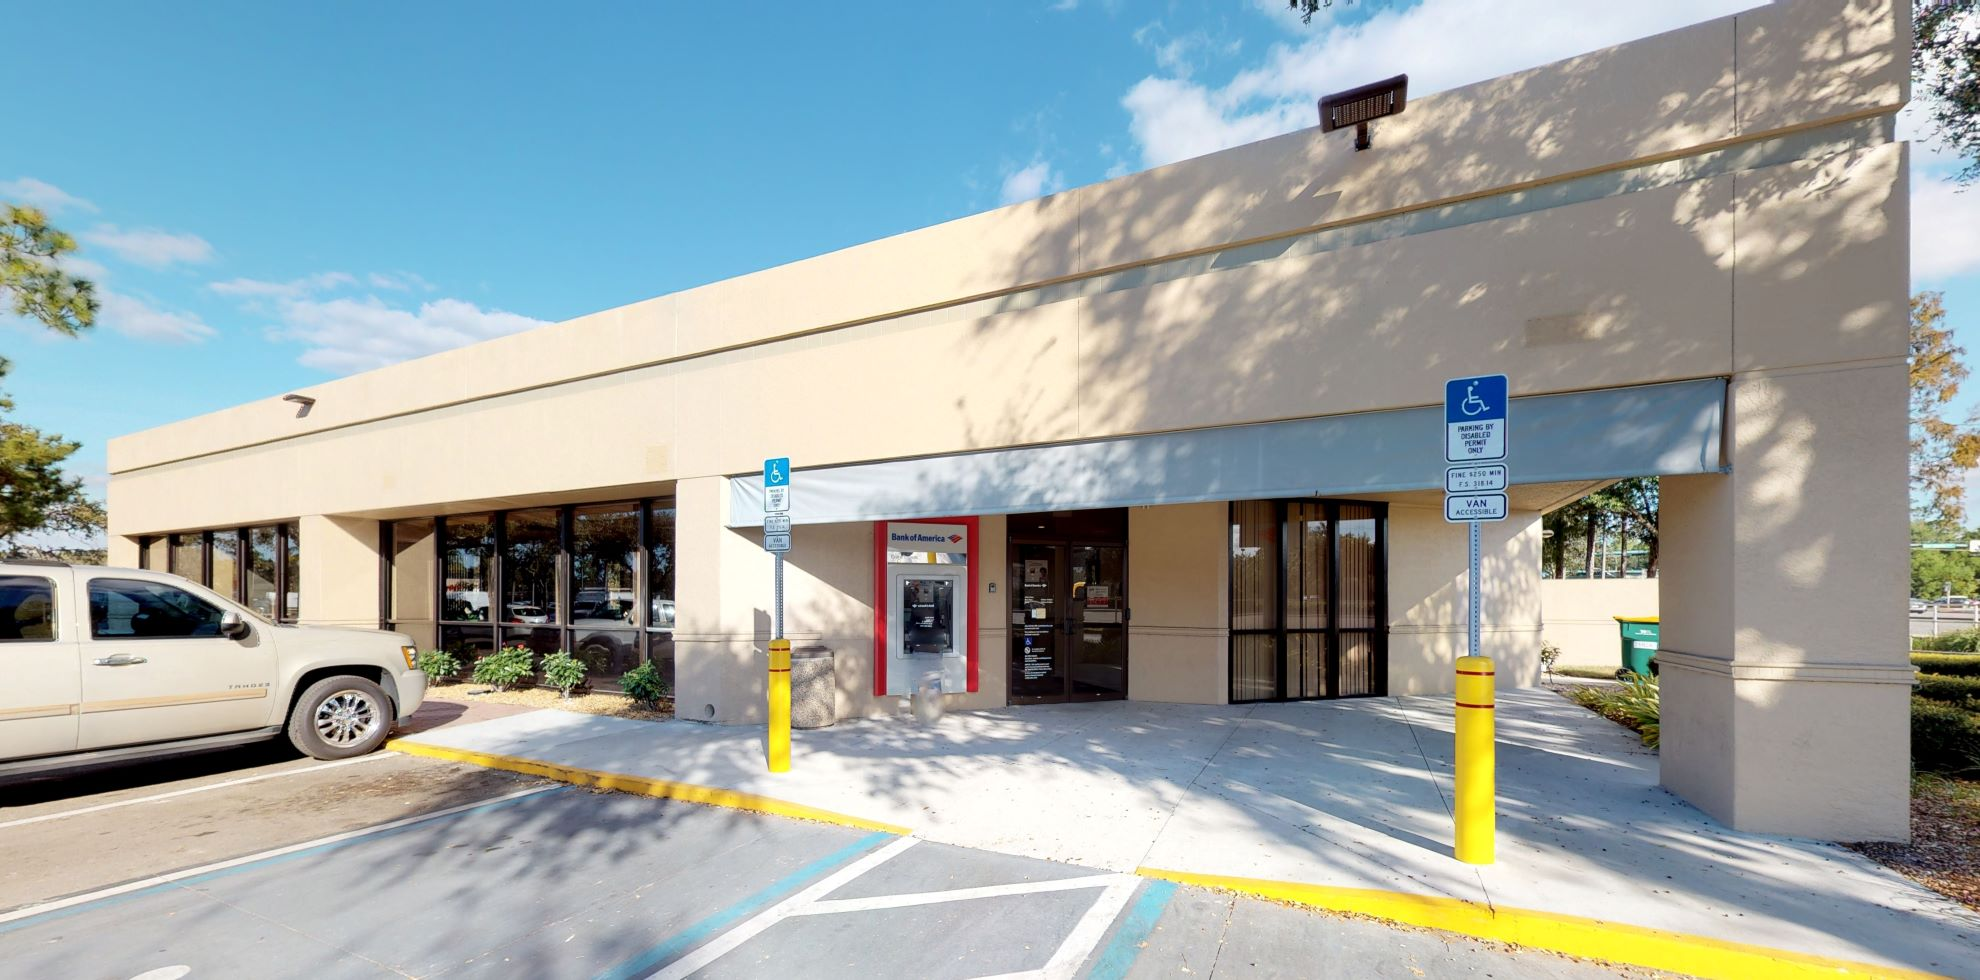 Bank of America financial center with drive-thru ATM | 7305 Radio Rd, Naples, FL 34104